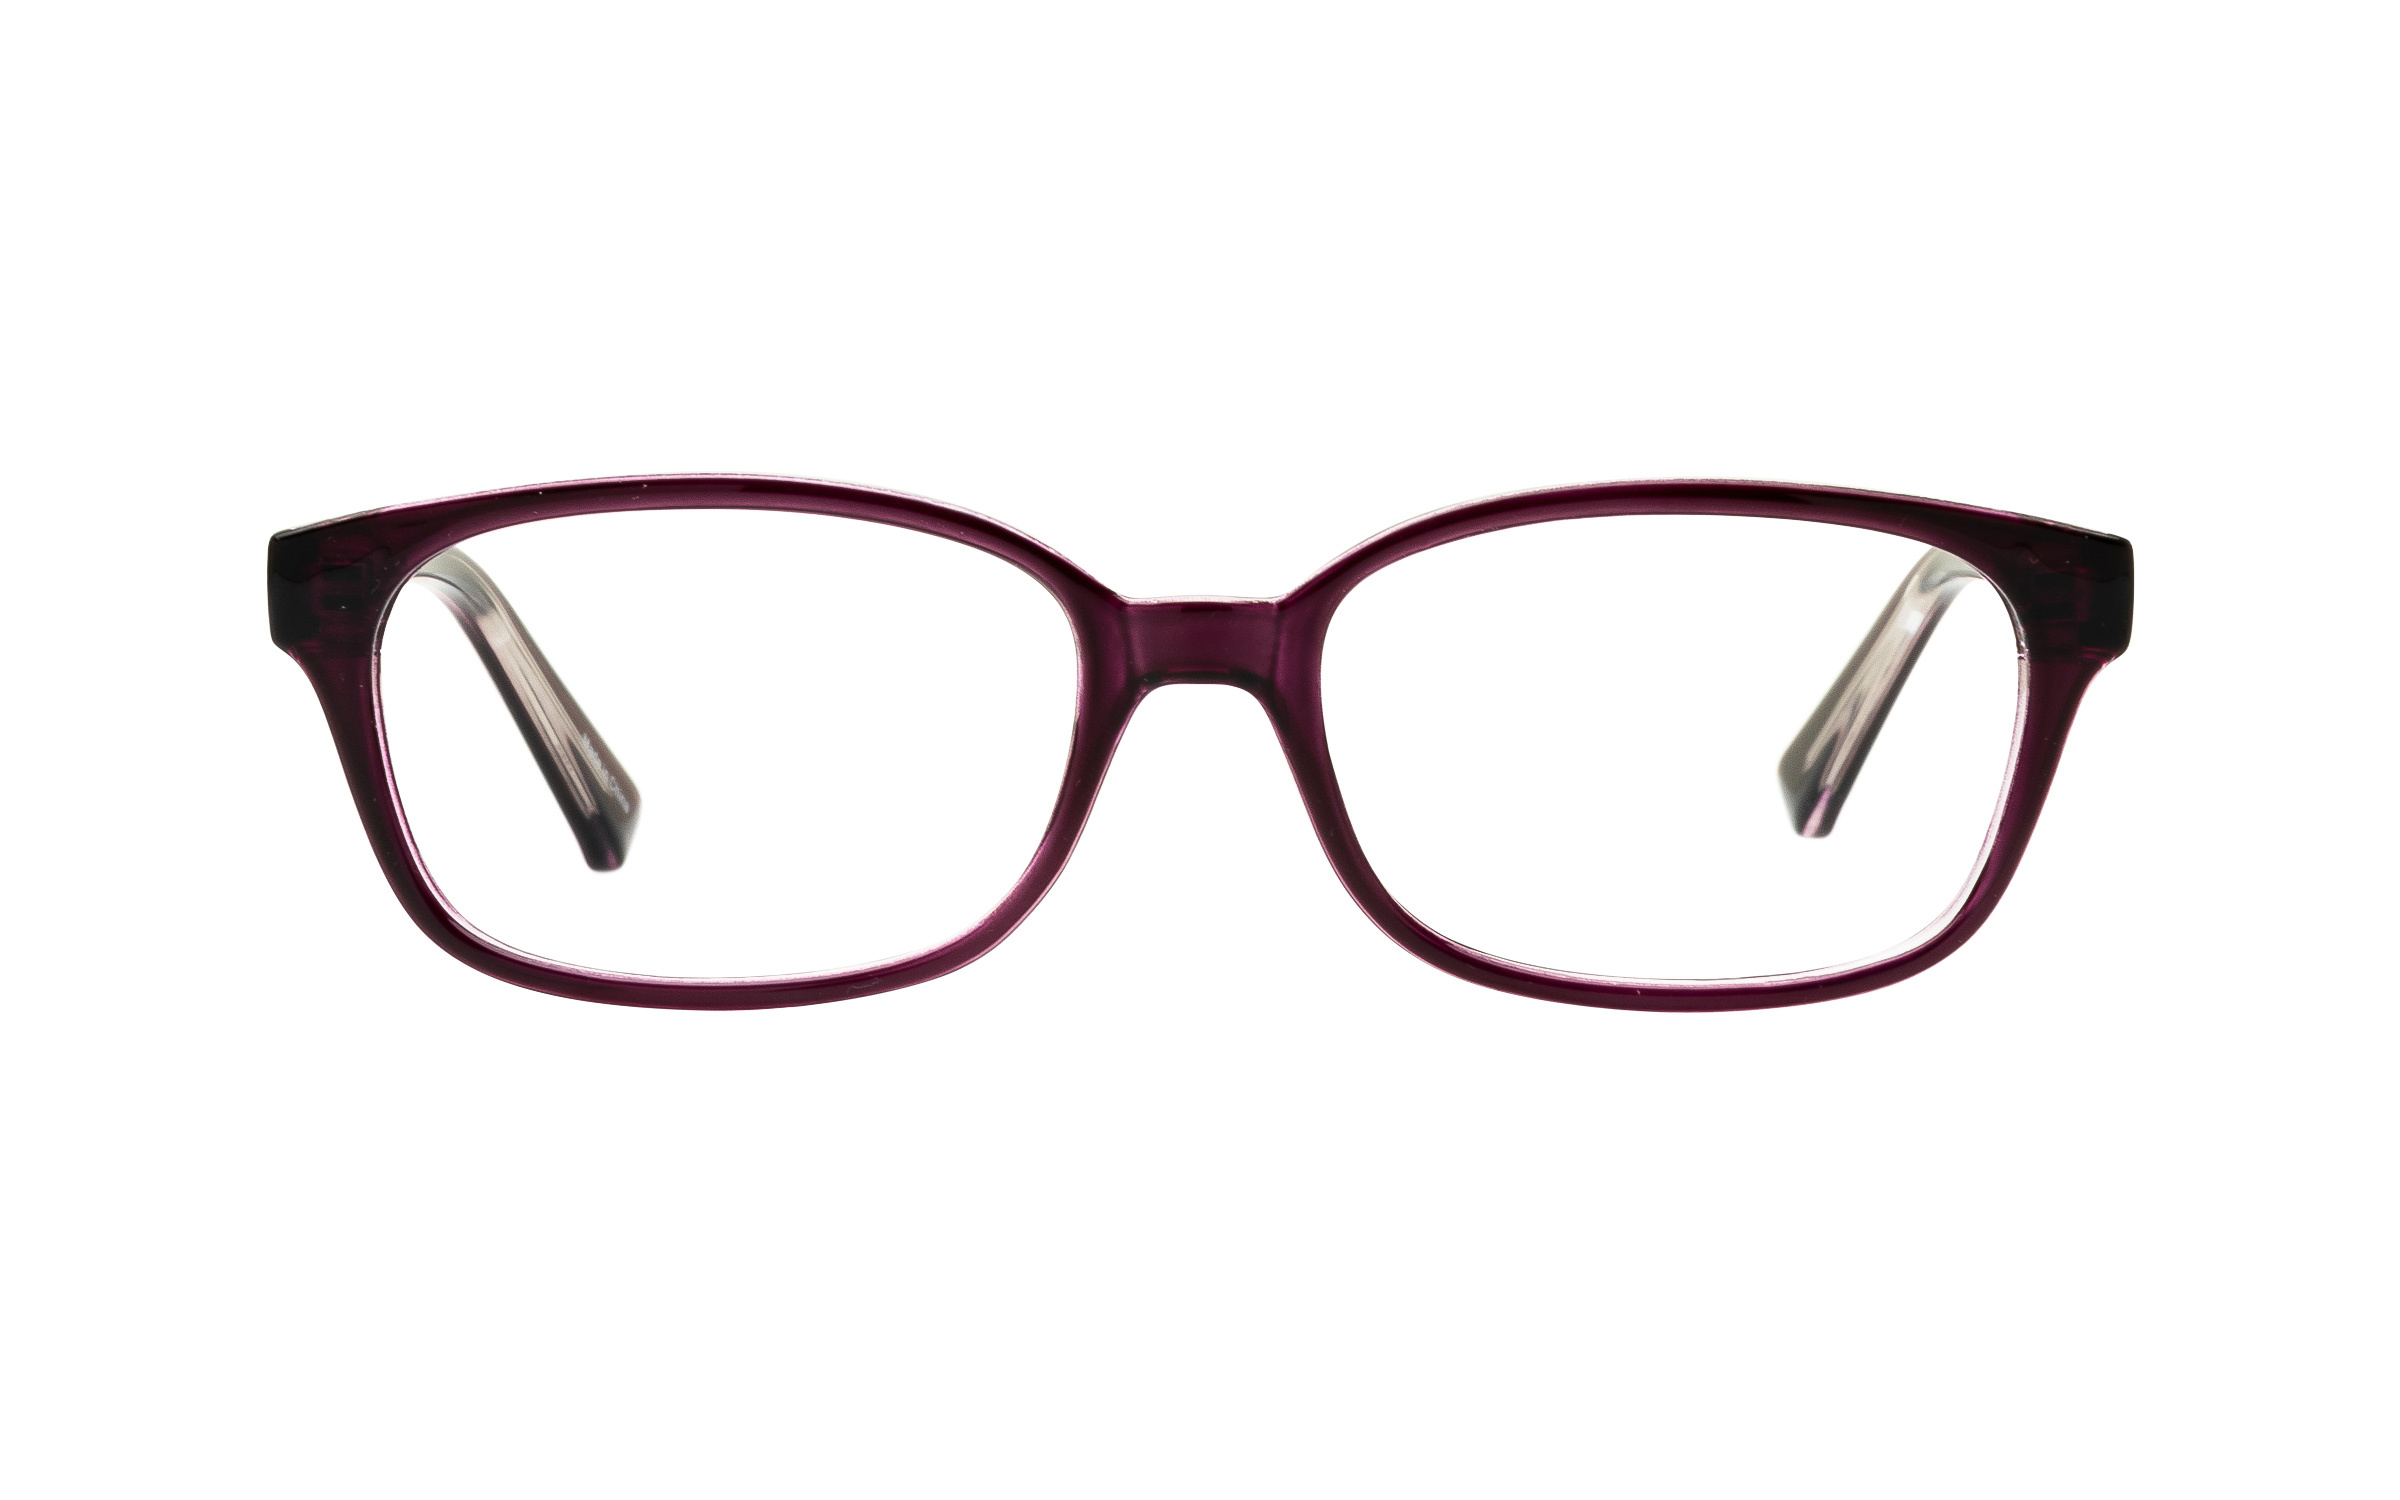 ClearlyBasics Clearly Junior Peachick KID004 C03 (47) Eyeglasses and Frame in Plum Purple | Plastic - Online